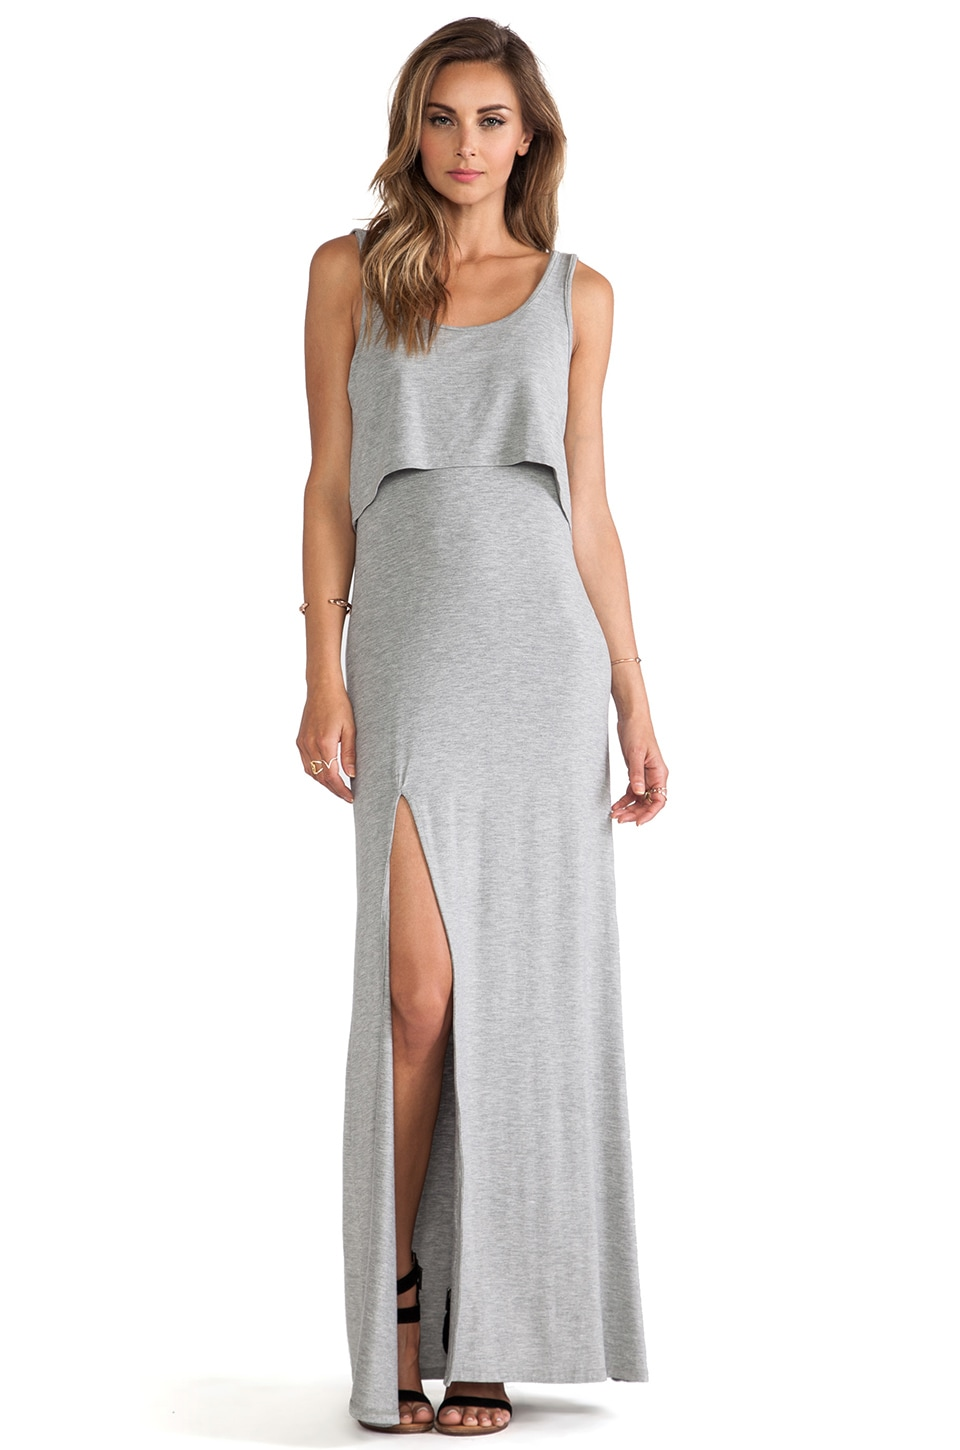 Lovers + Friends Hello Goodbye Maxi Dress in Heather Grey